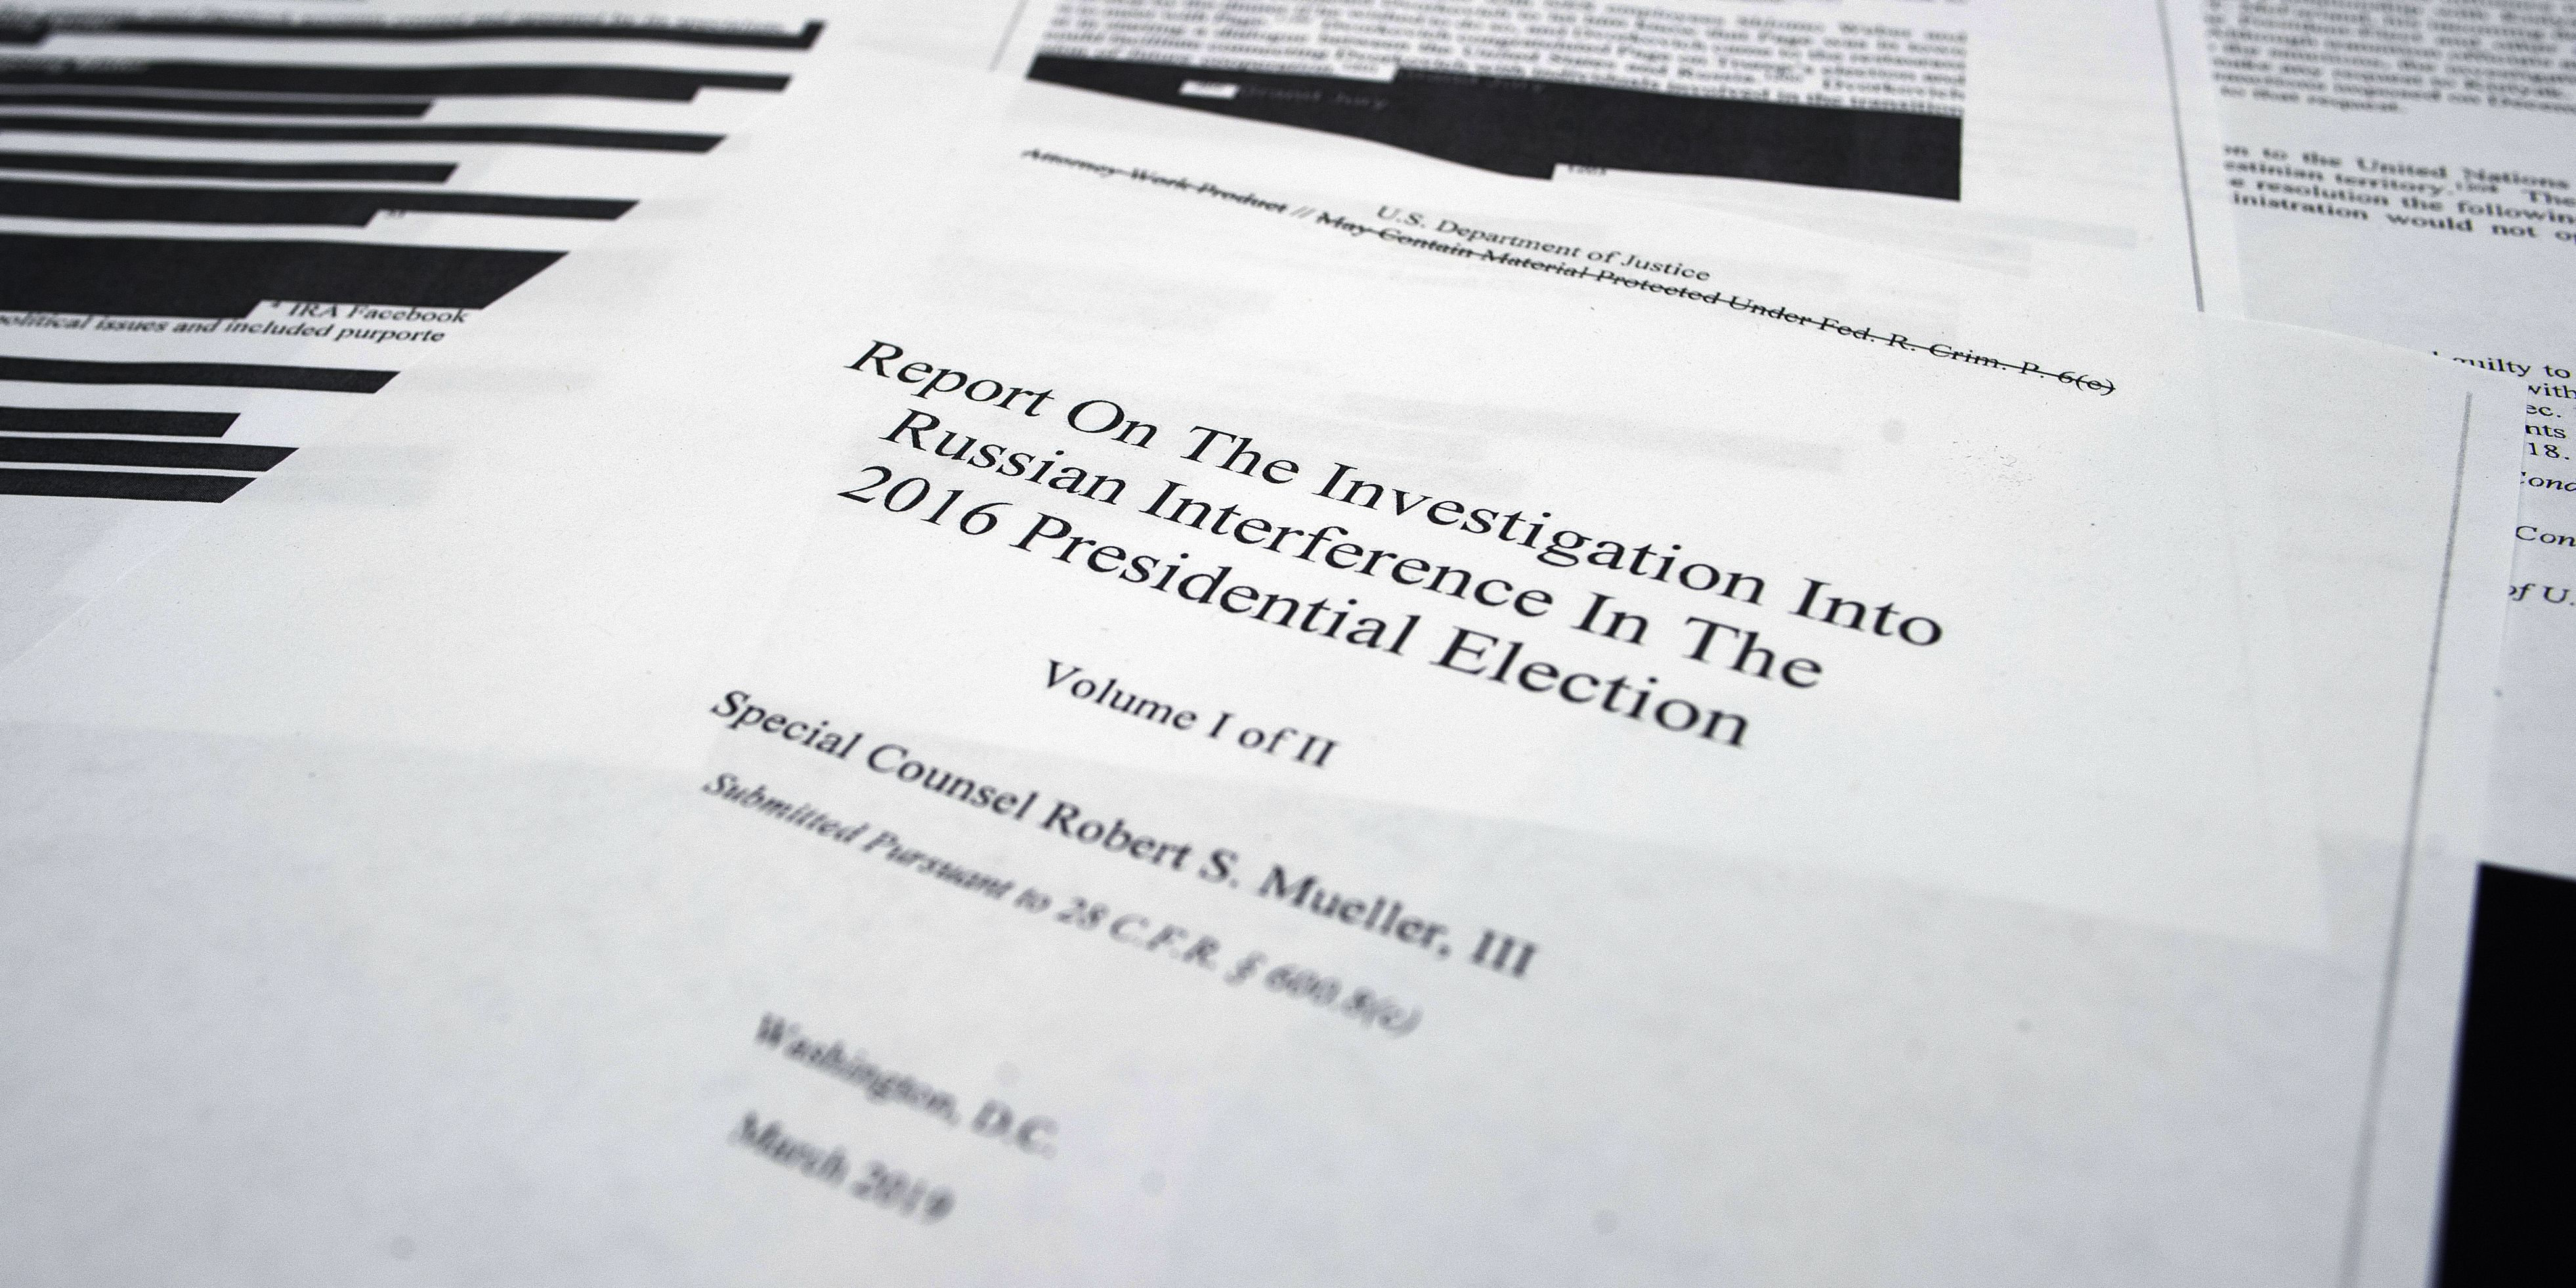 Trump tried to choke Russia probe, oust Mueller, report says; president claims it shows no collusion or obstruction